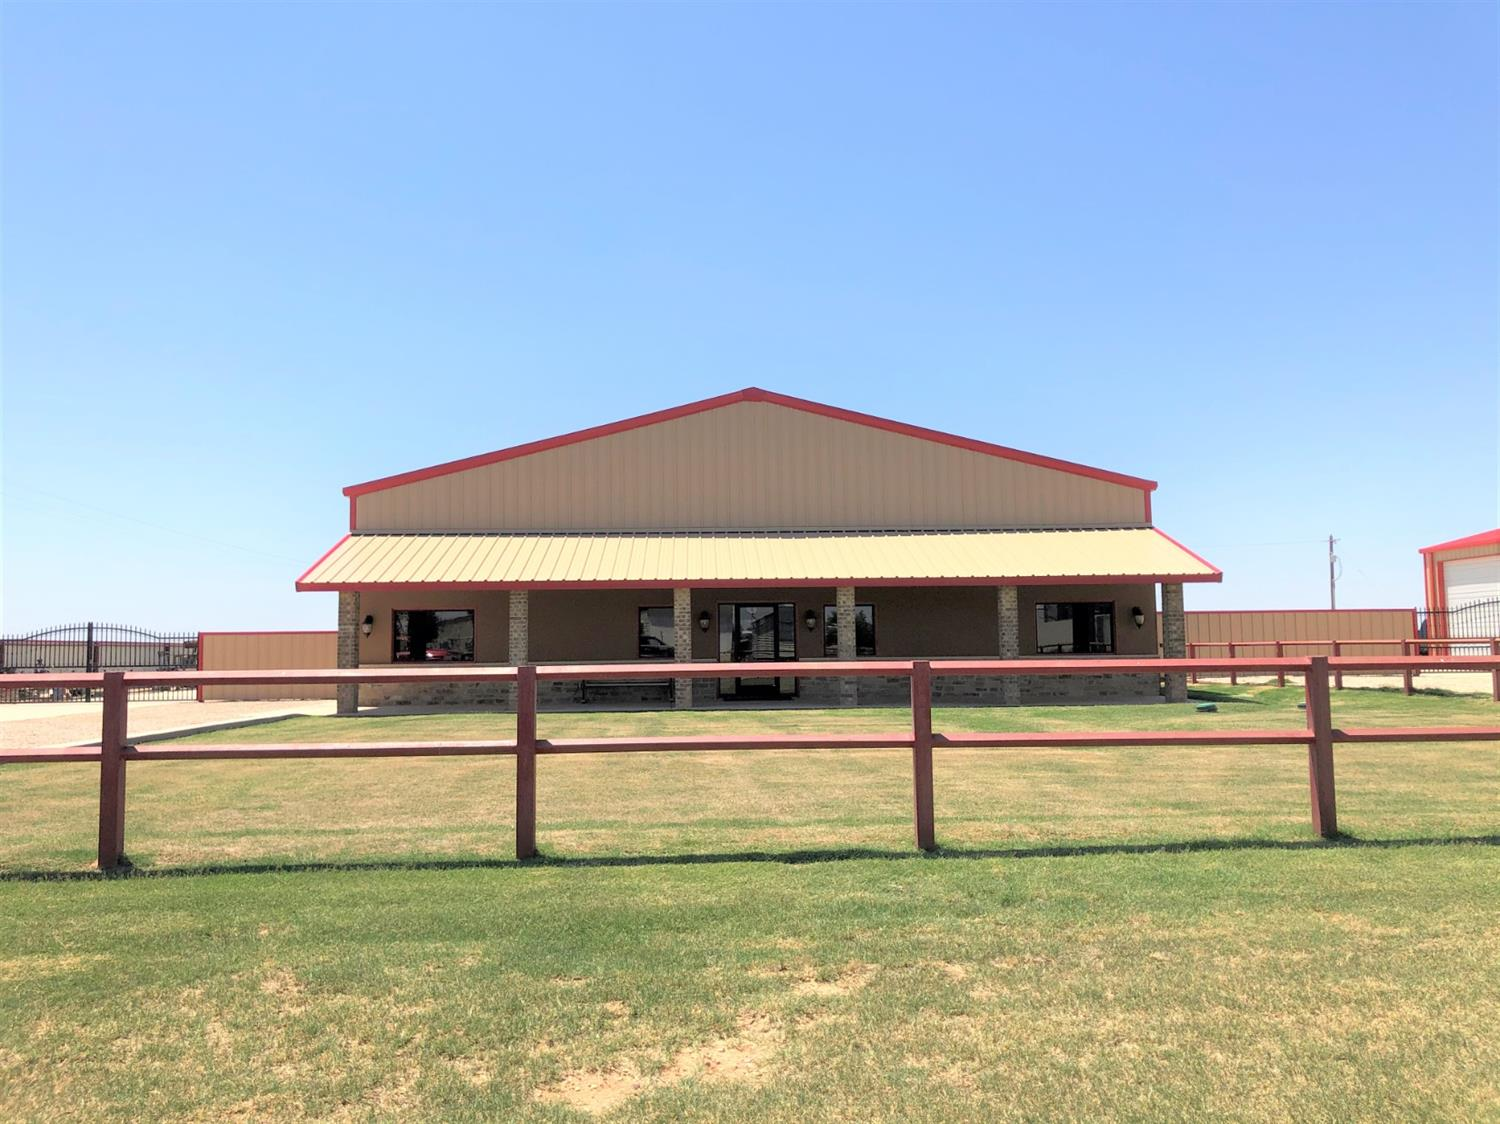 Move in Ready Office and Warehouse. New construction in 2018. Situated on 1 acre fenced stack lot with crushed rock. 3-14' Overhead Doors. Private well and septic. 30-50 Amp service with Full Water RV Hookups. Outside of City Limits. 4,800 sq ft. Build-out complete with offices, conference room, show room, break room, kitchenettes, granite throughout, insulated shop, epoxy concrete floors, secured stacked yard, quality construction throughout. LED lights in warehouse, 9,000 pound lift, additional barn storage in yard. Irrigation for front yard.